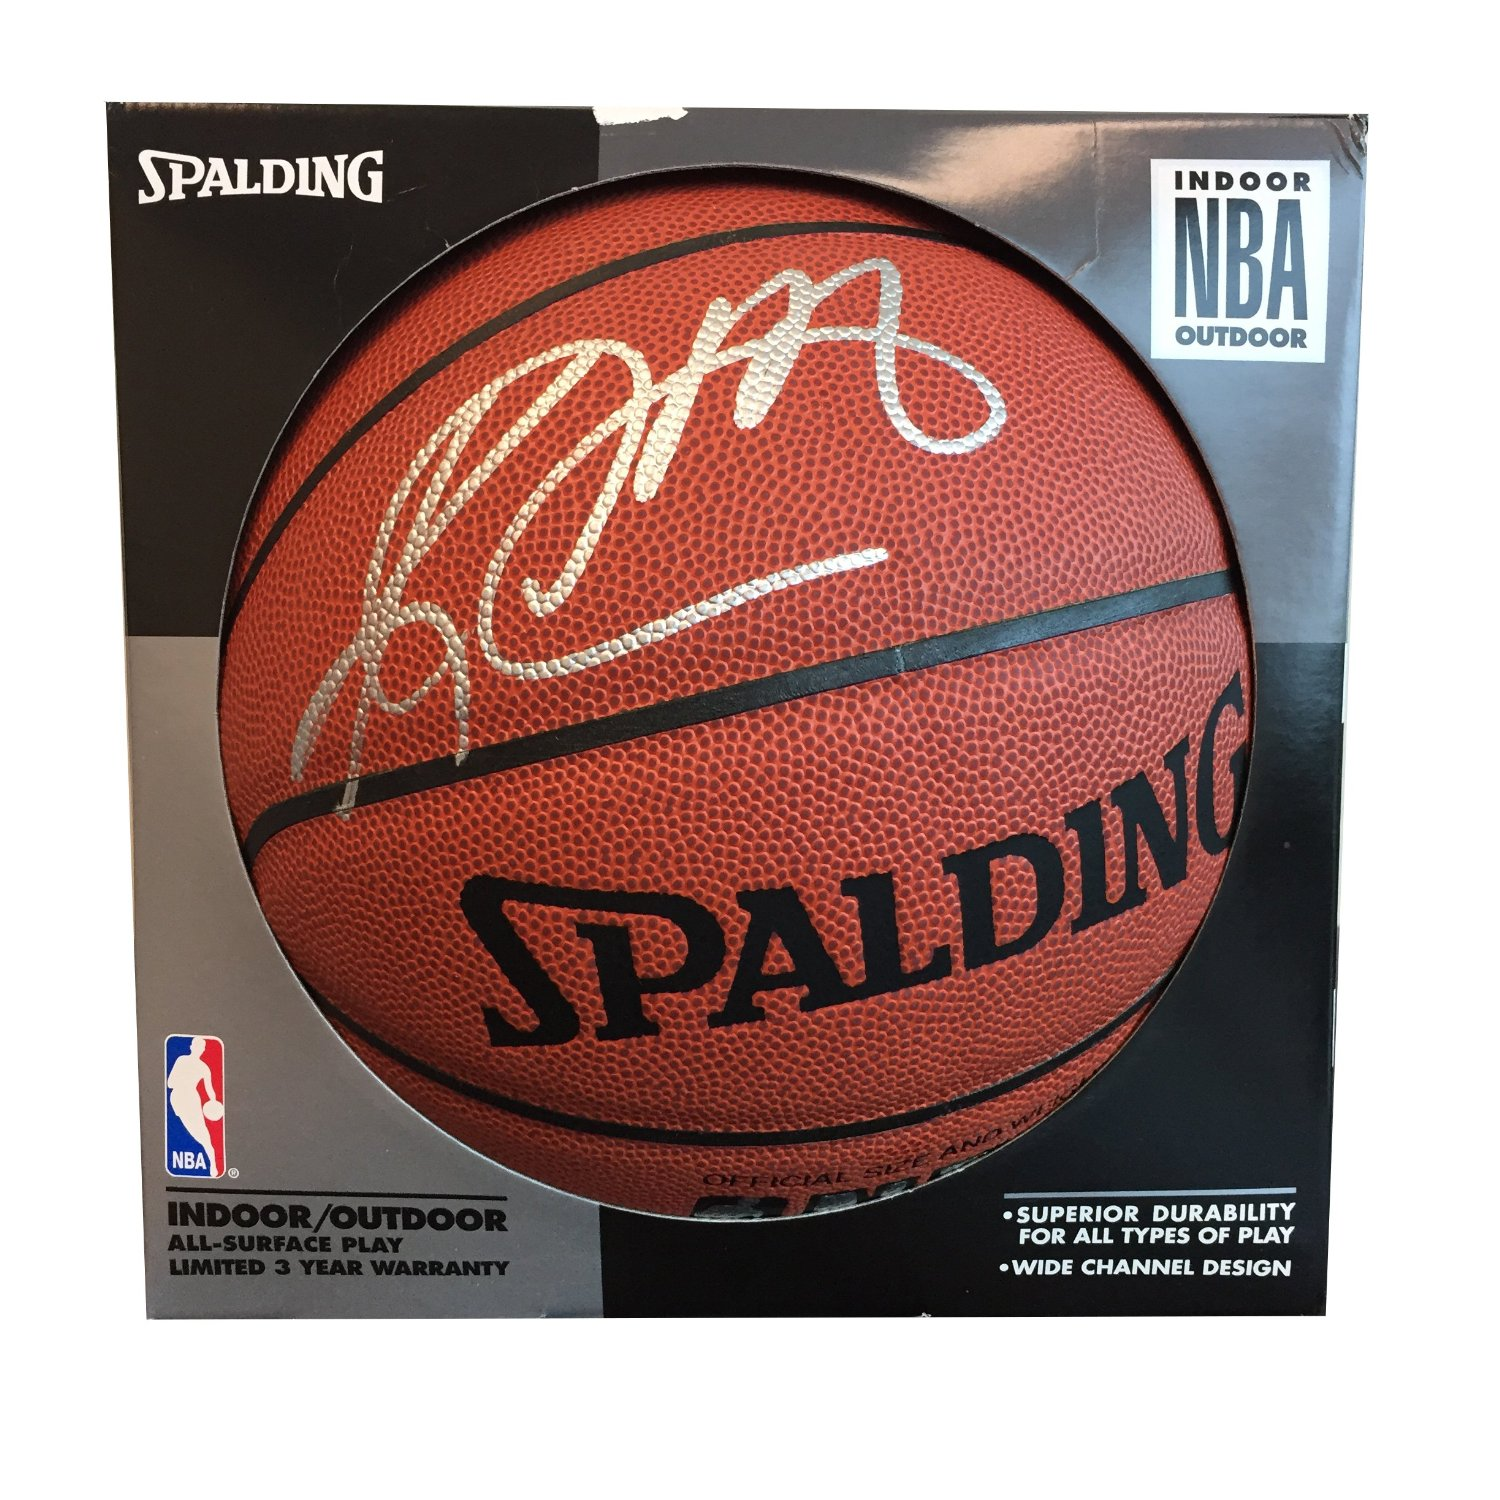 683e5ff04a4 Get Quotations · Utah Jazz - Autographed Karl Malone Spalding Basketball